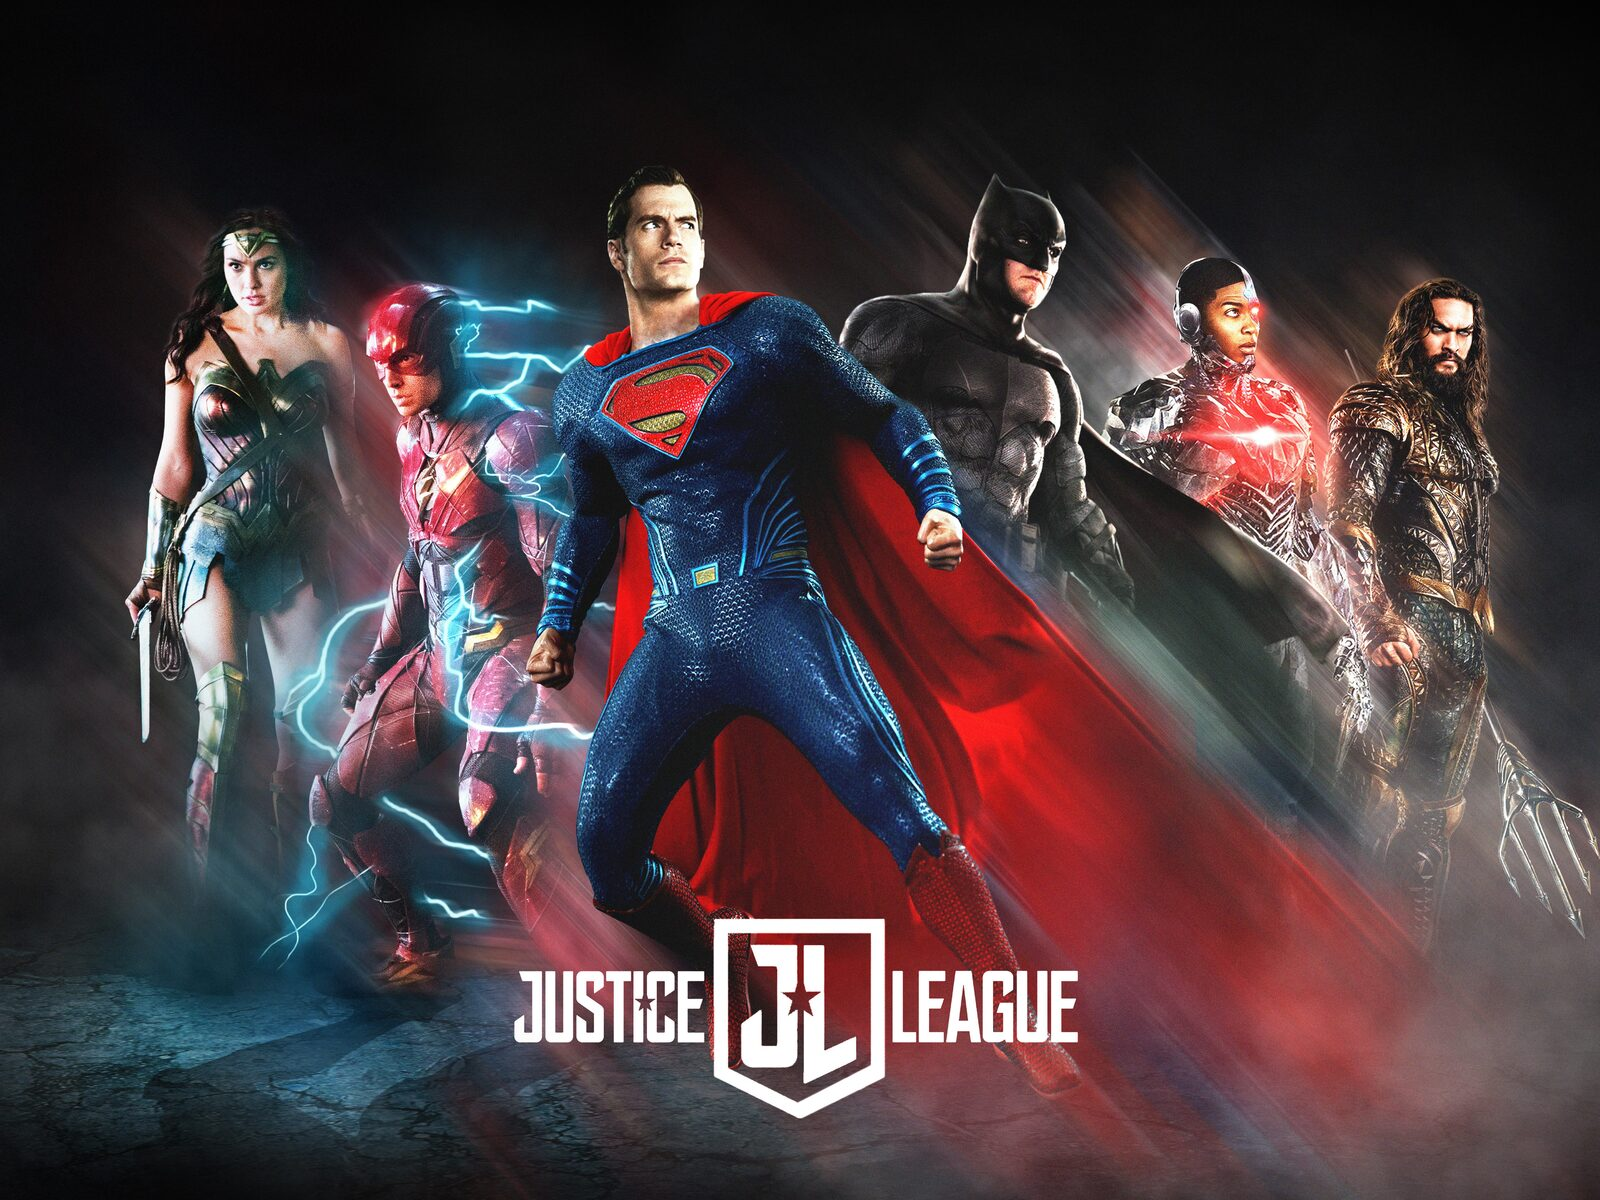 justice-league-fanart-8k-a9.jpg